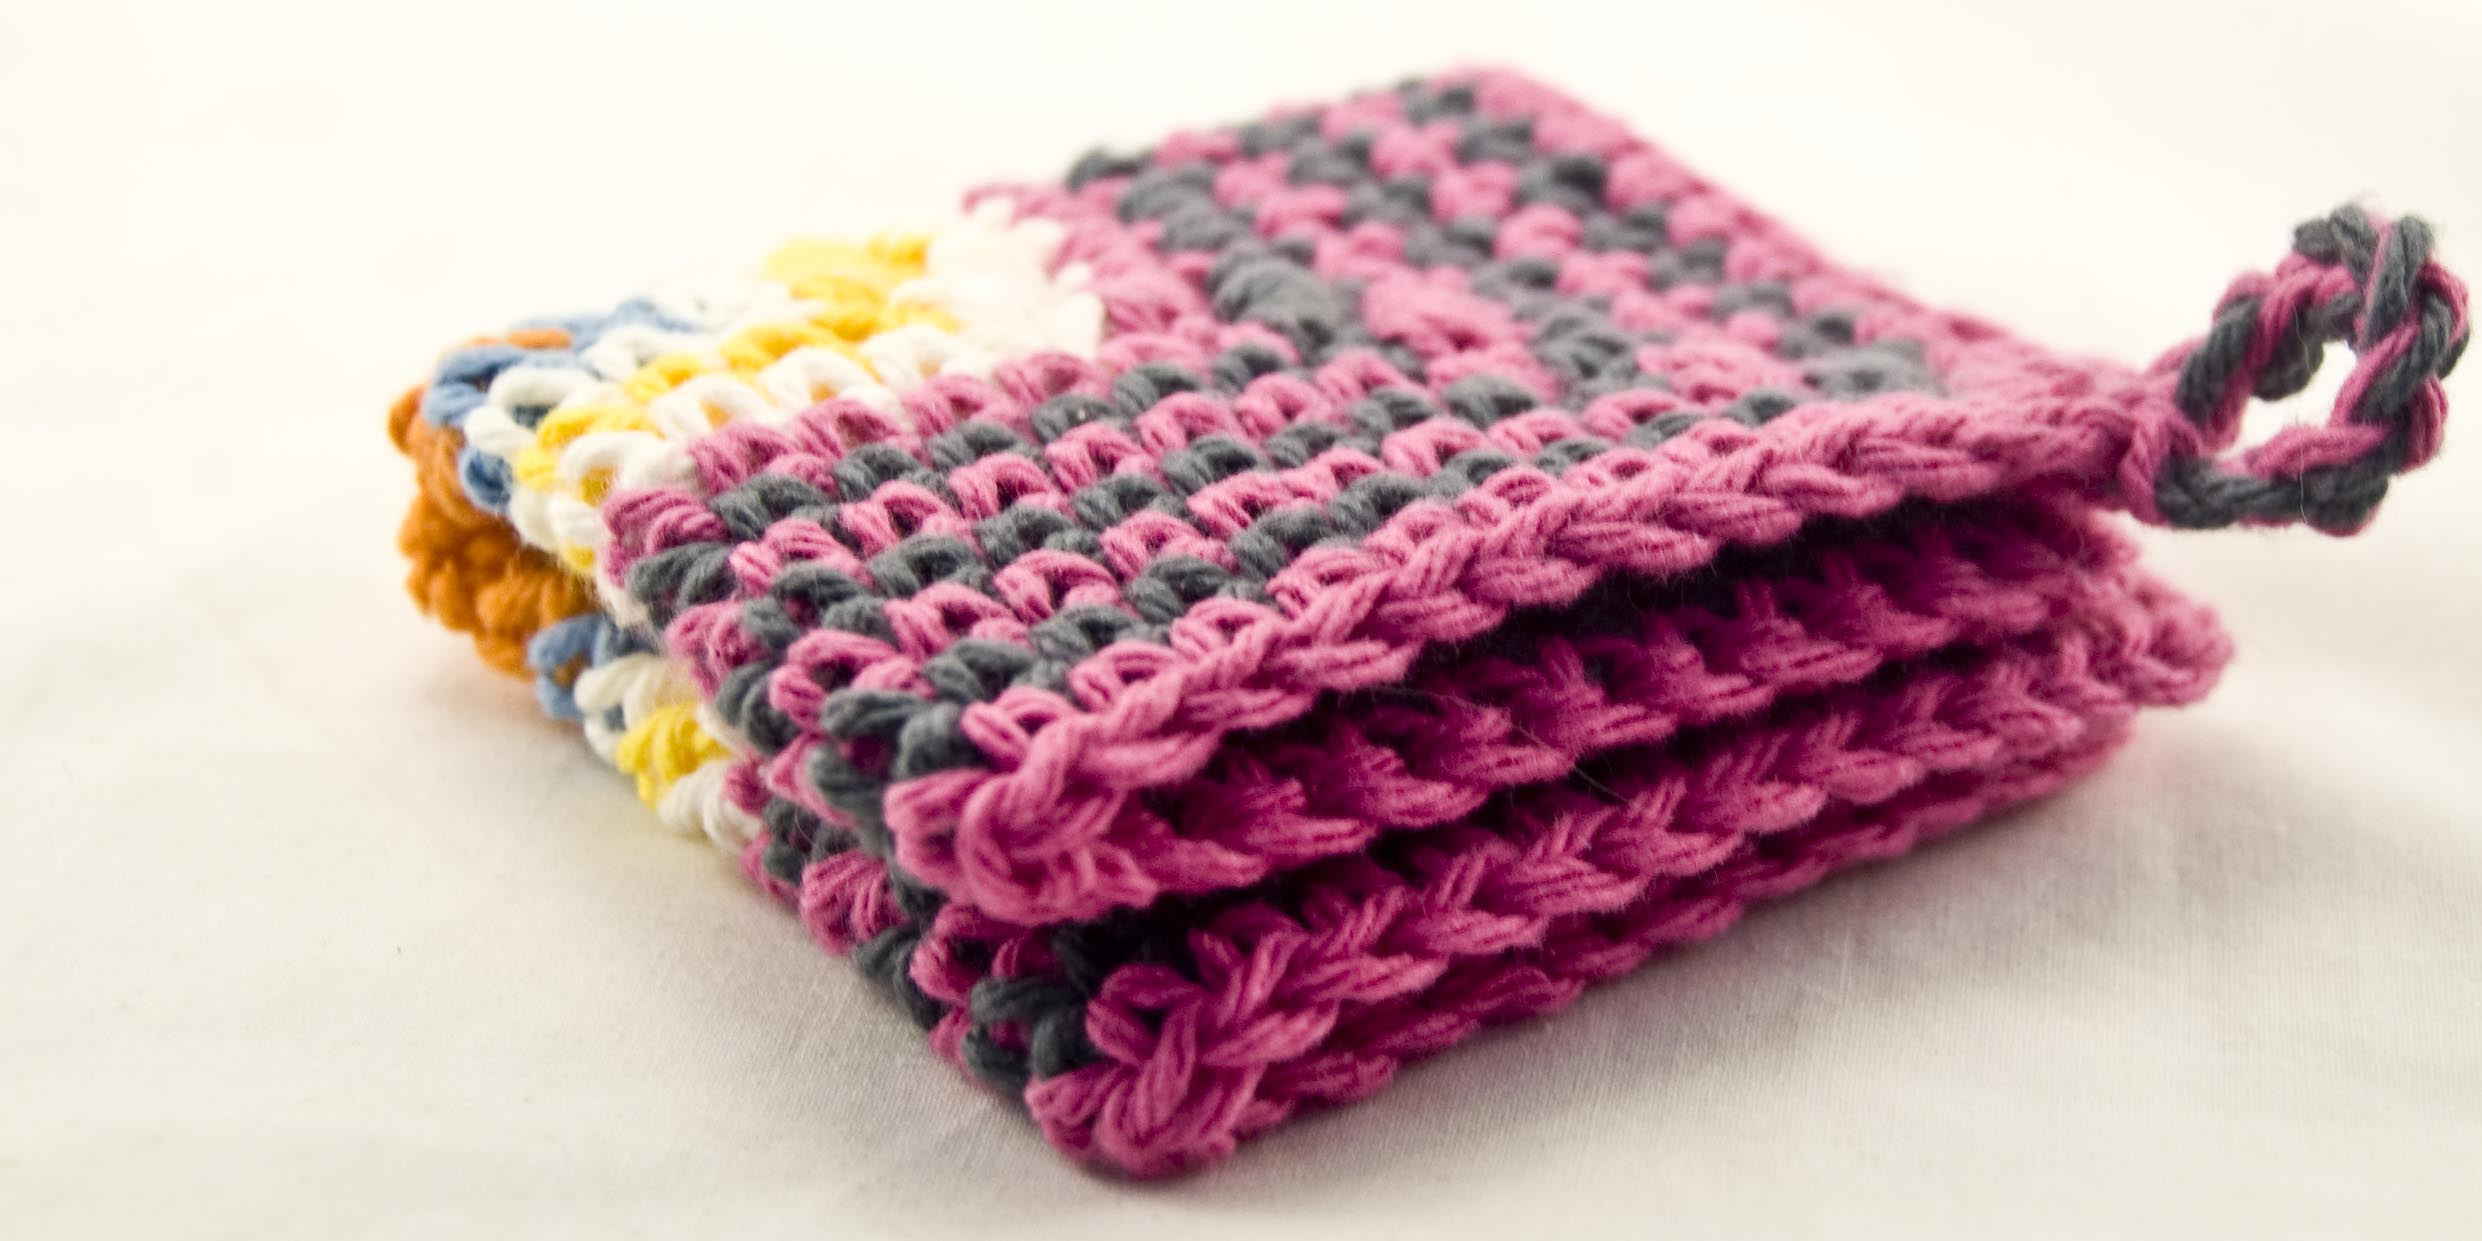 Free Crochet Pattern For Easy Dishcloth : FREE CROCHETED DISH CLOTH PATTERN ? Easy Crochet Patterns